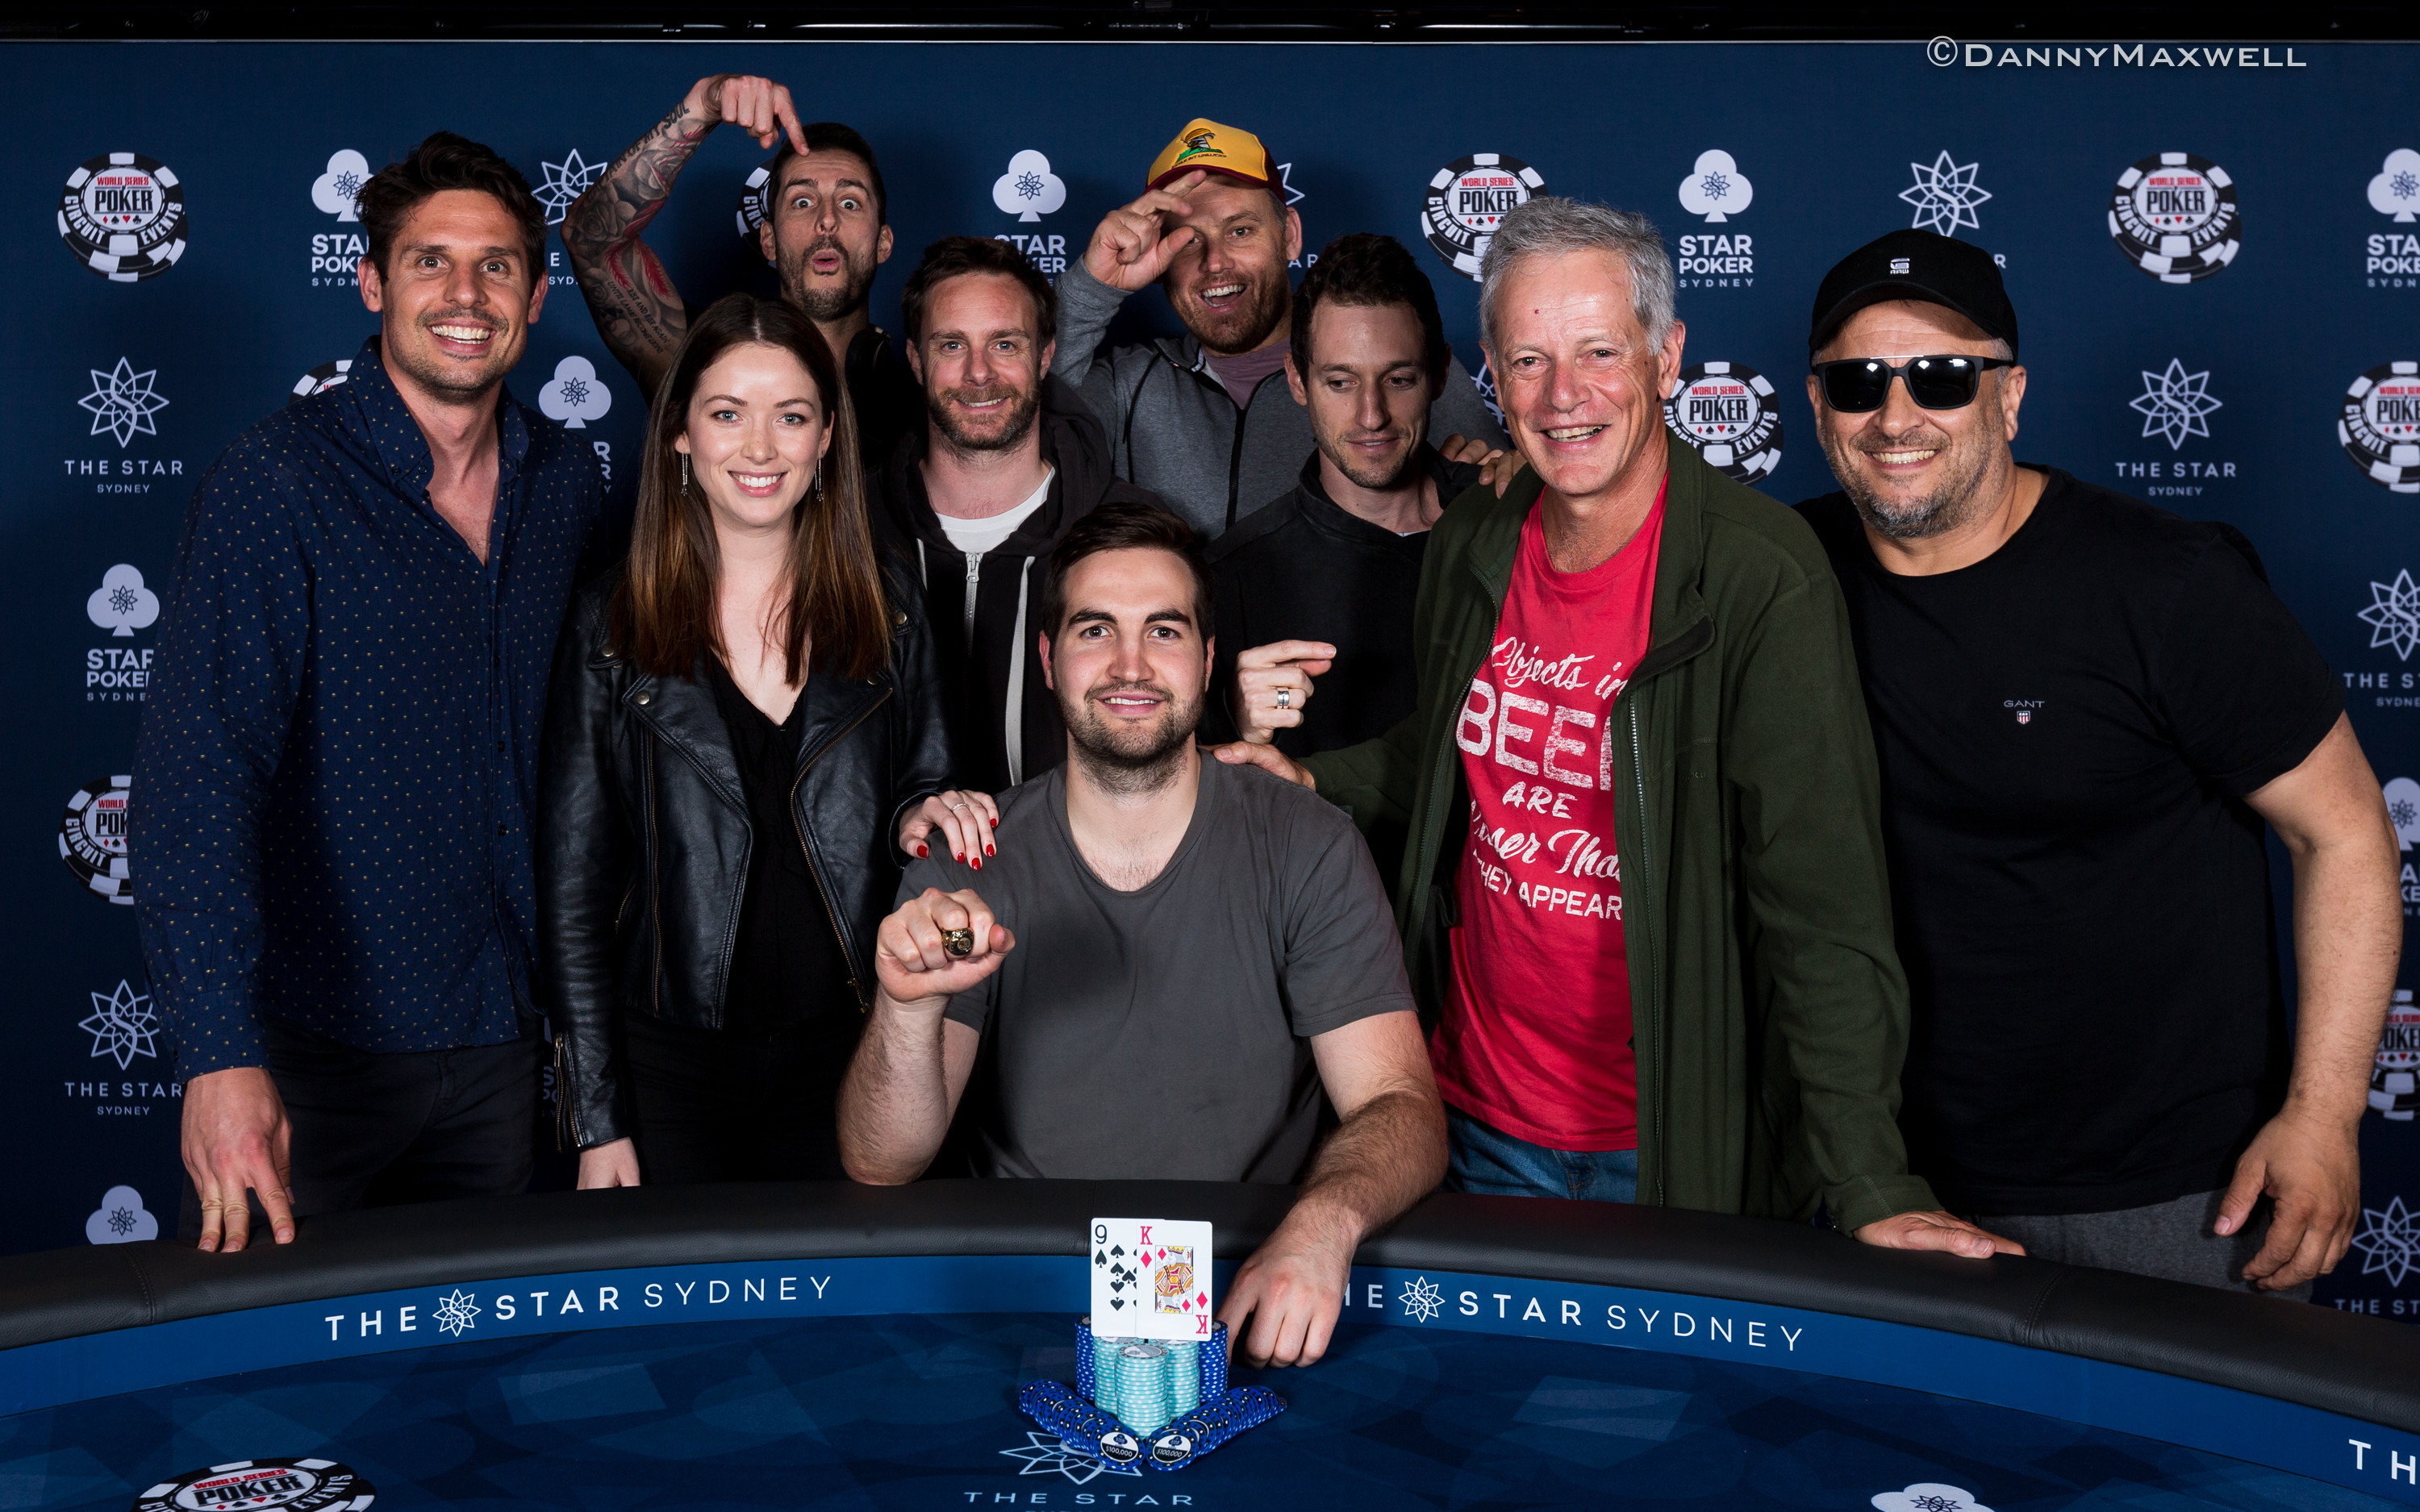 Andrew White -2018 WSOP International Circuit The Star Sydney $1,150 Monster Stack Champion